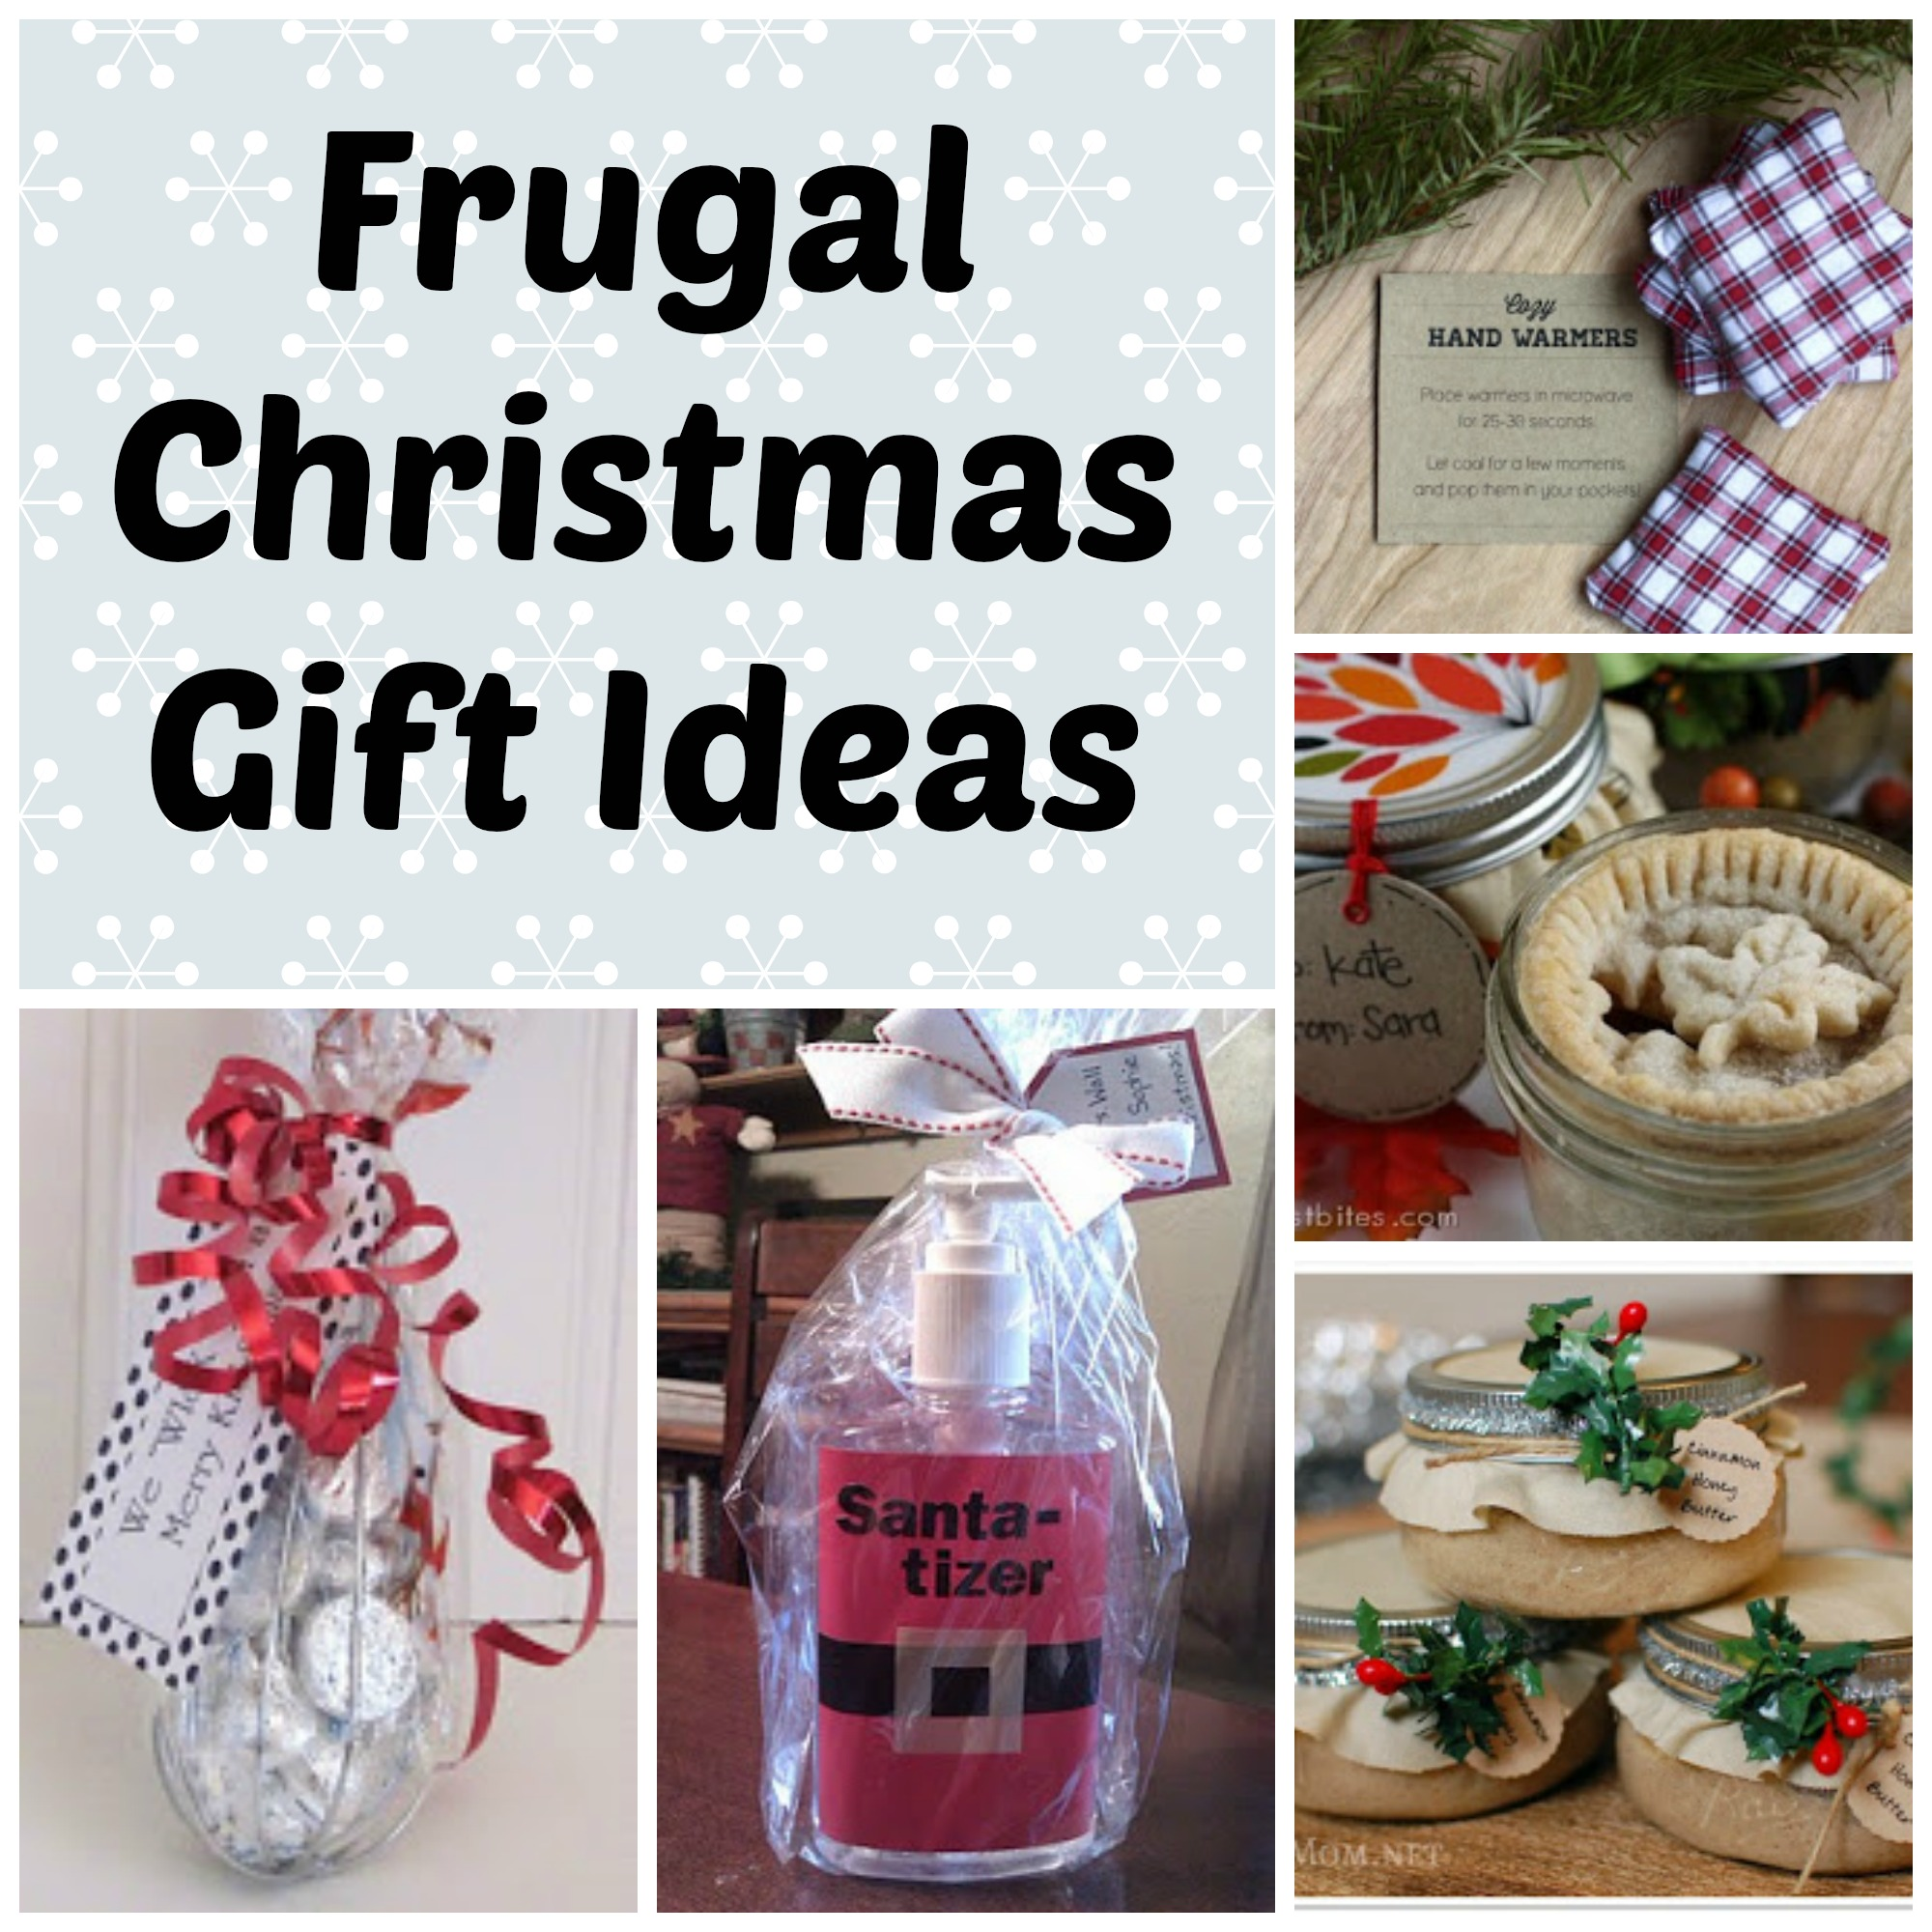 Frugal Christmas Gift Ideas (Part 1) - Saving Cent by Cent